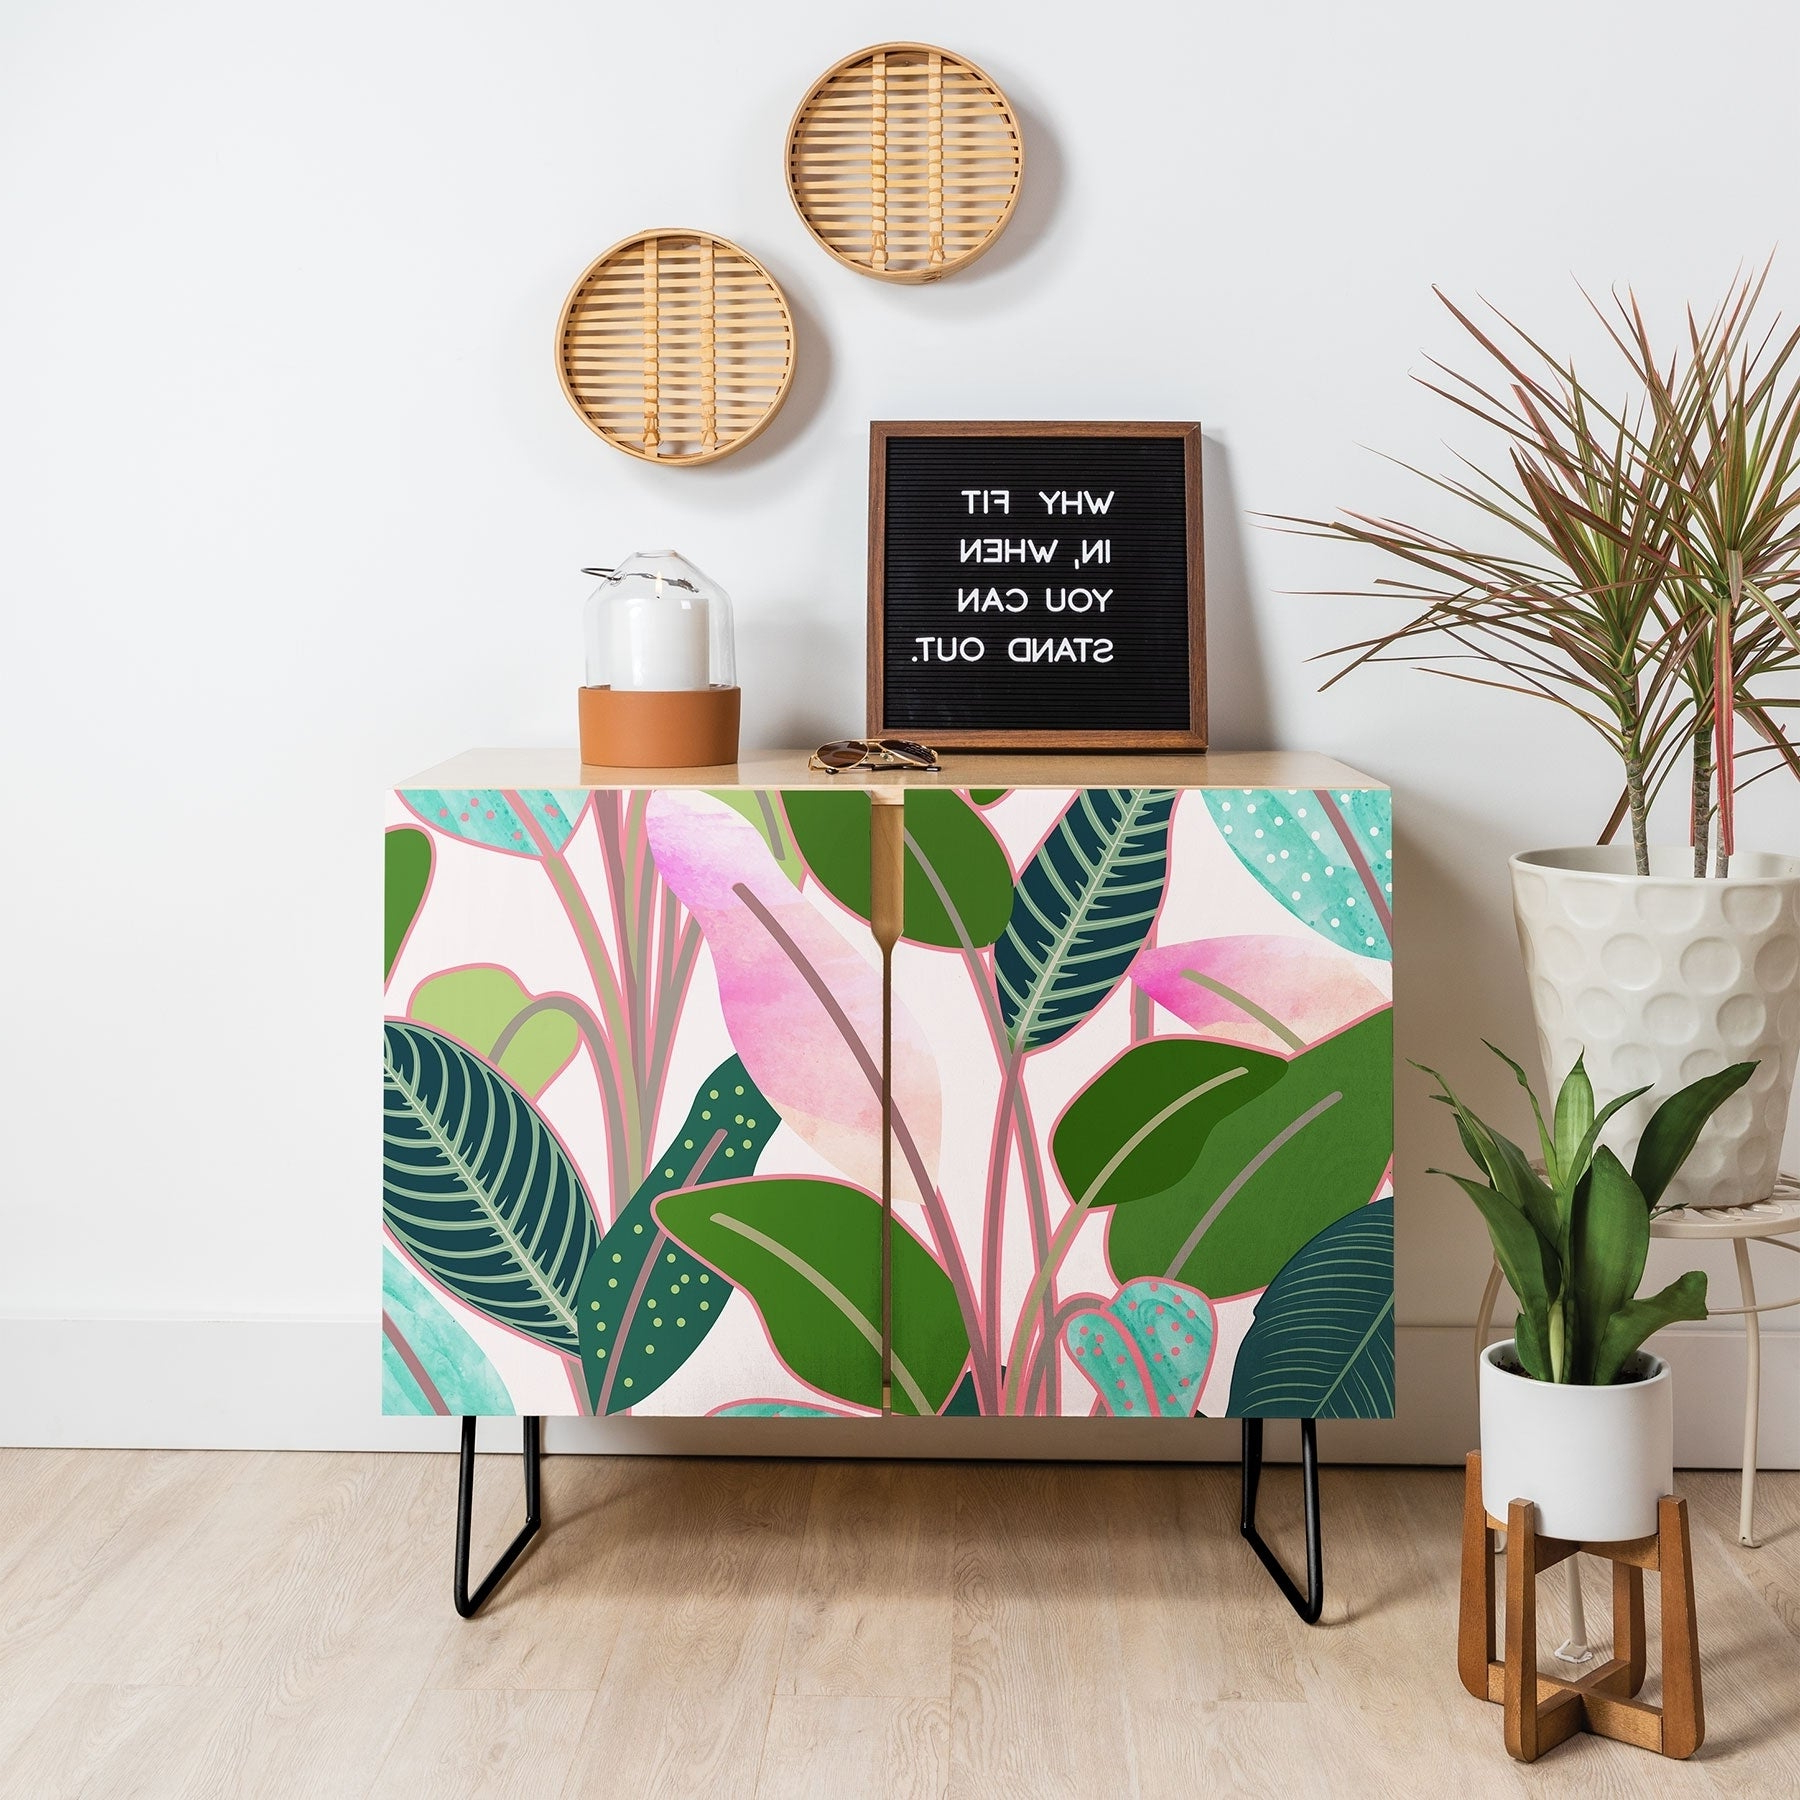 Deny Designs Colorful Leaves Credenza (Birch Or Walnut, 2 Leg Options) Throughout Colorful Leaves Credenzas (View 11 of 20)